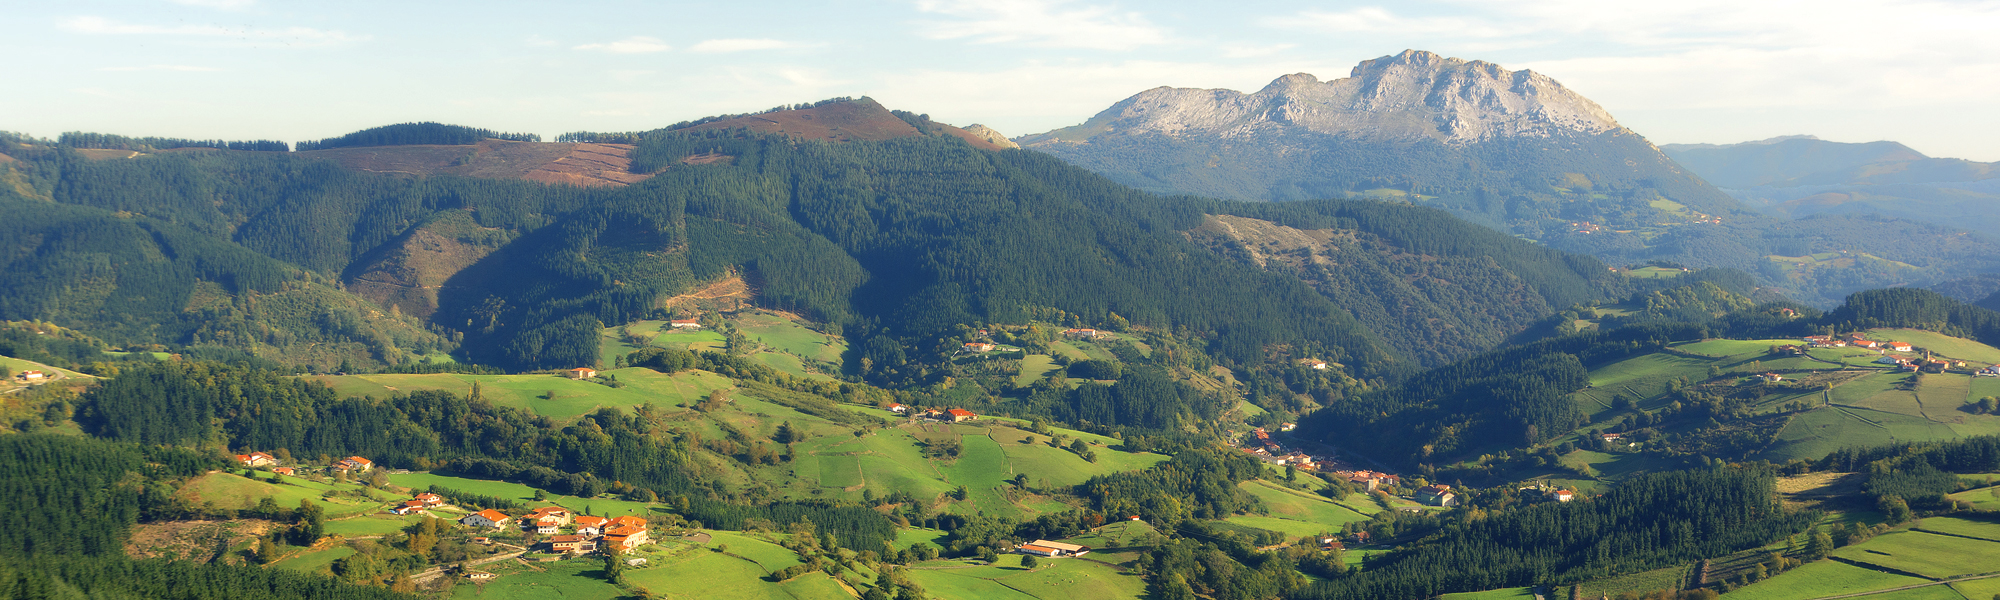 Tour-of-the-Basque-Country-Main-Feature-Image